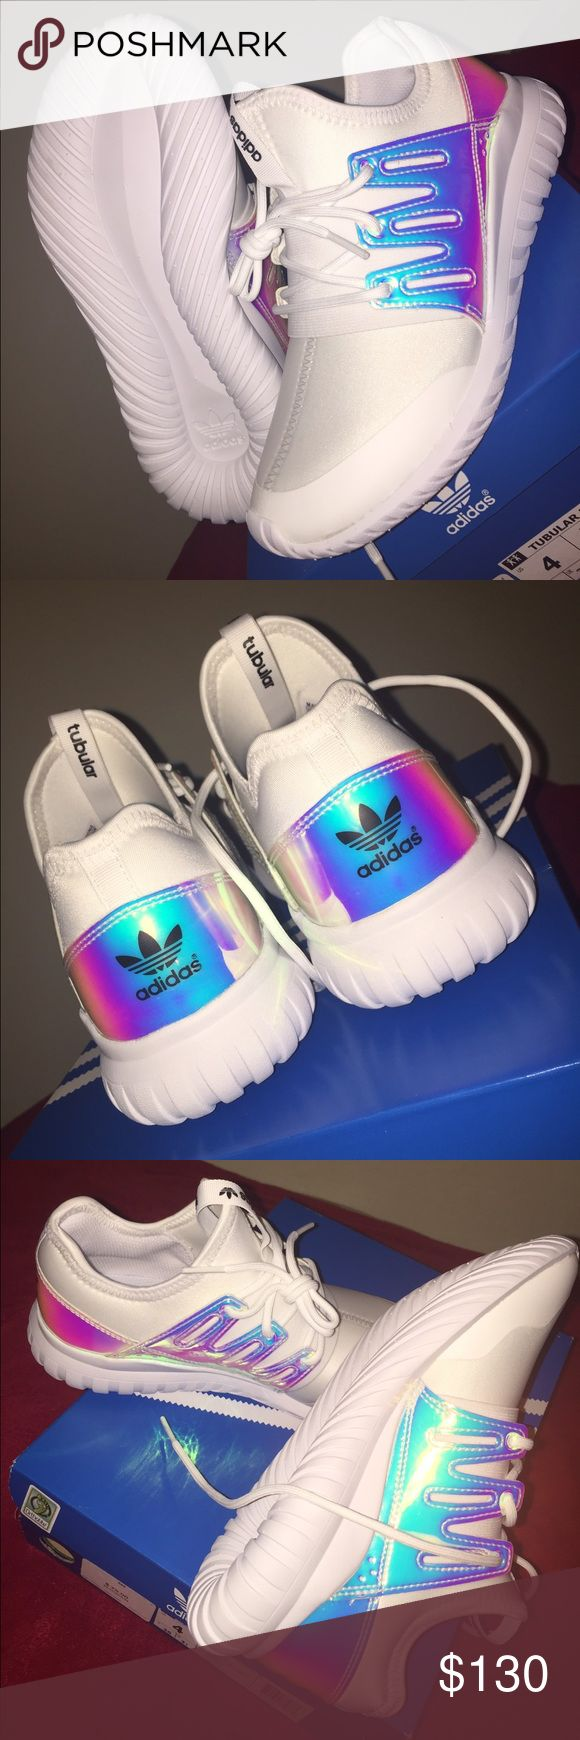 Adidas Tubular Radial K White and holographic adidas tubular. Brand new, never worn. Very comfortable and hard to find. I'm selling these because they are to small for me :( But still super cute! I am listing these as a 6 because a 6 in women's is a 4 in boys. Comes with the box. 100% authentic. Adidas Shoes Sneakers